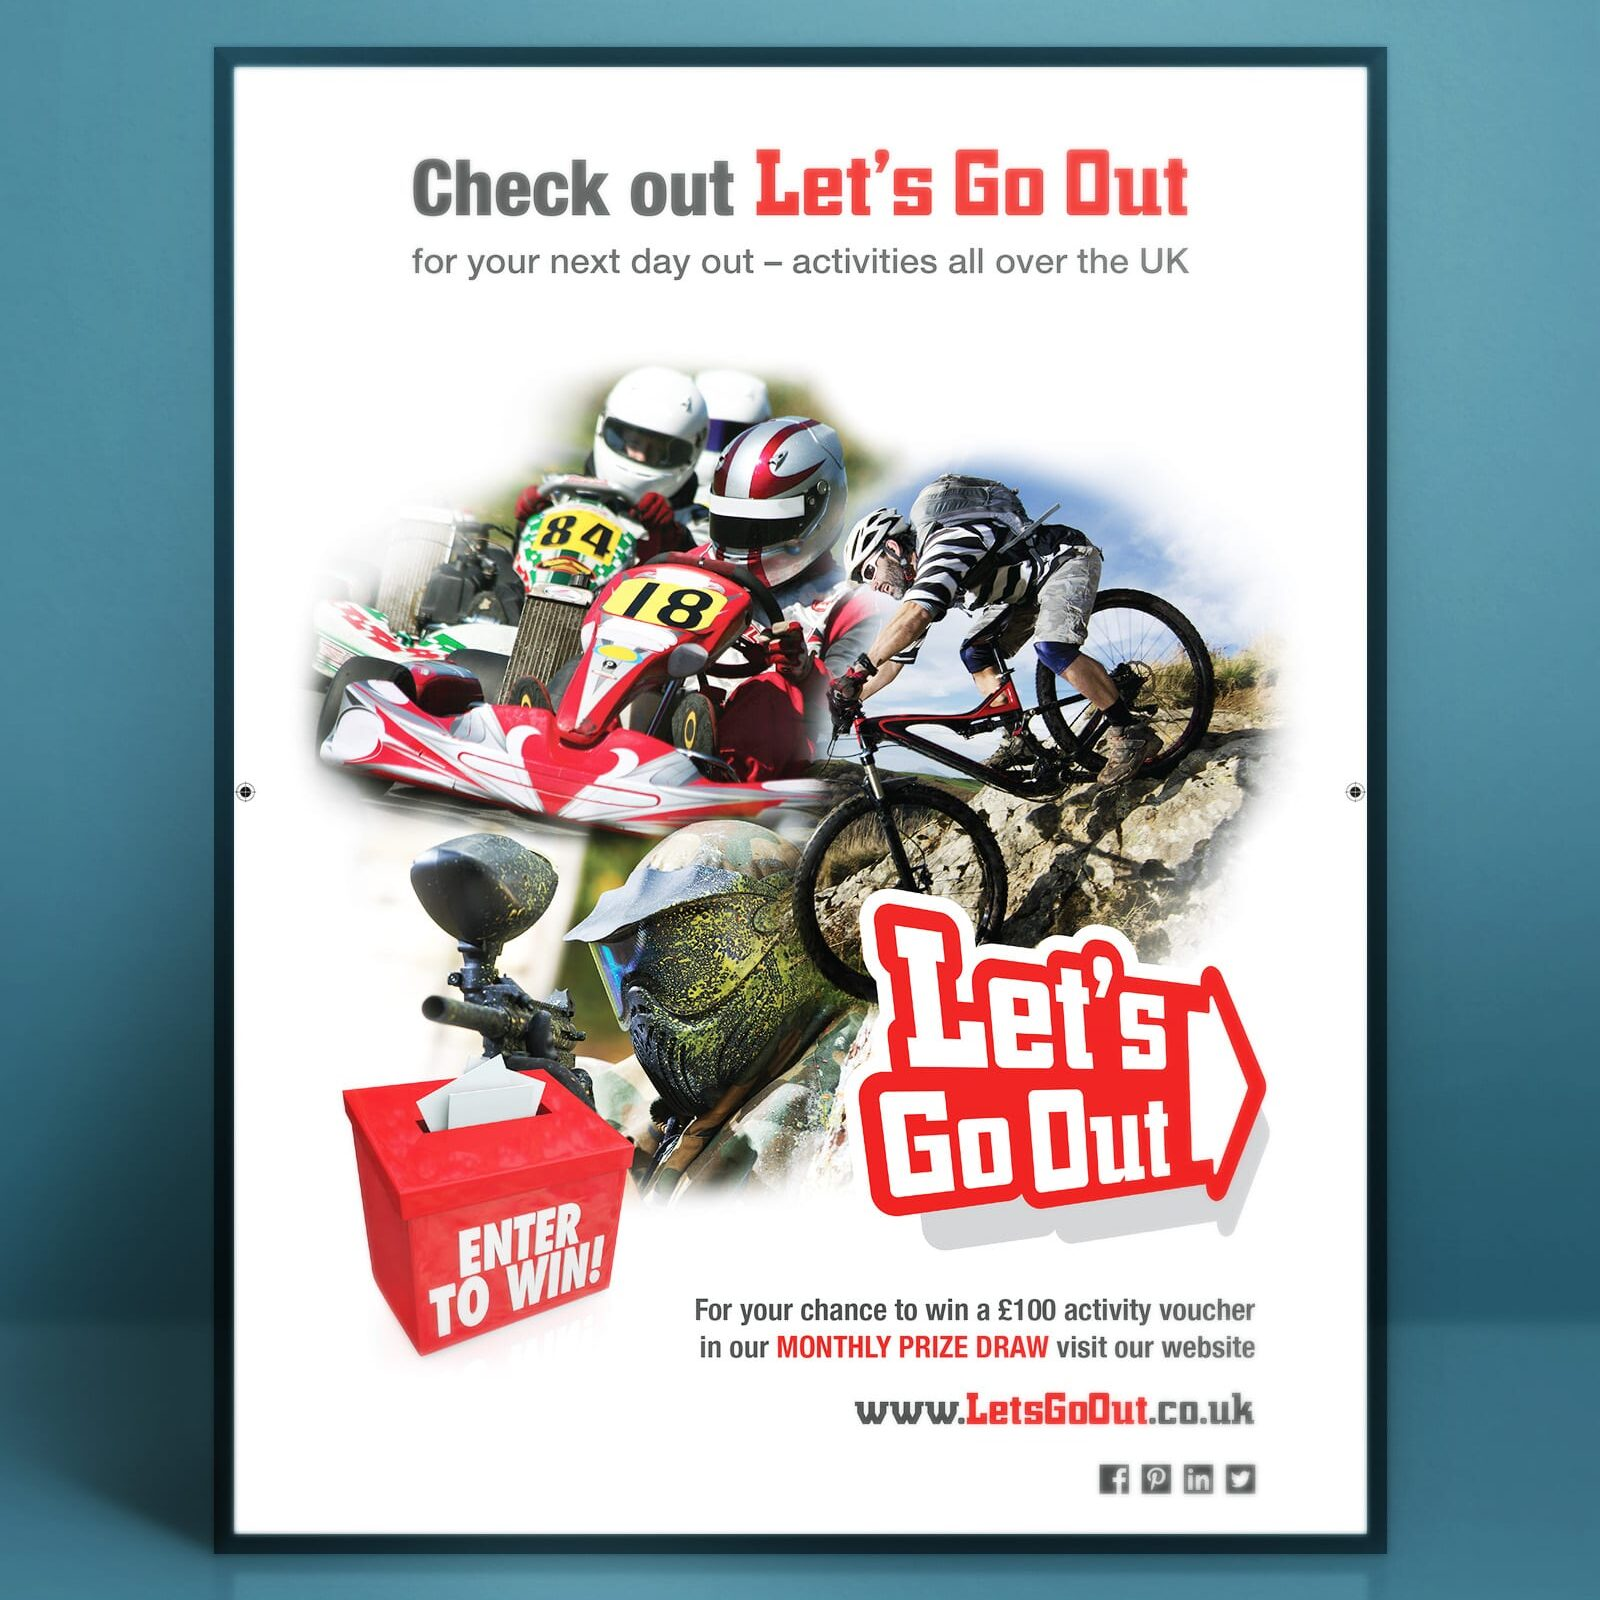 Poster design for Let's Go Out